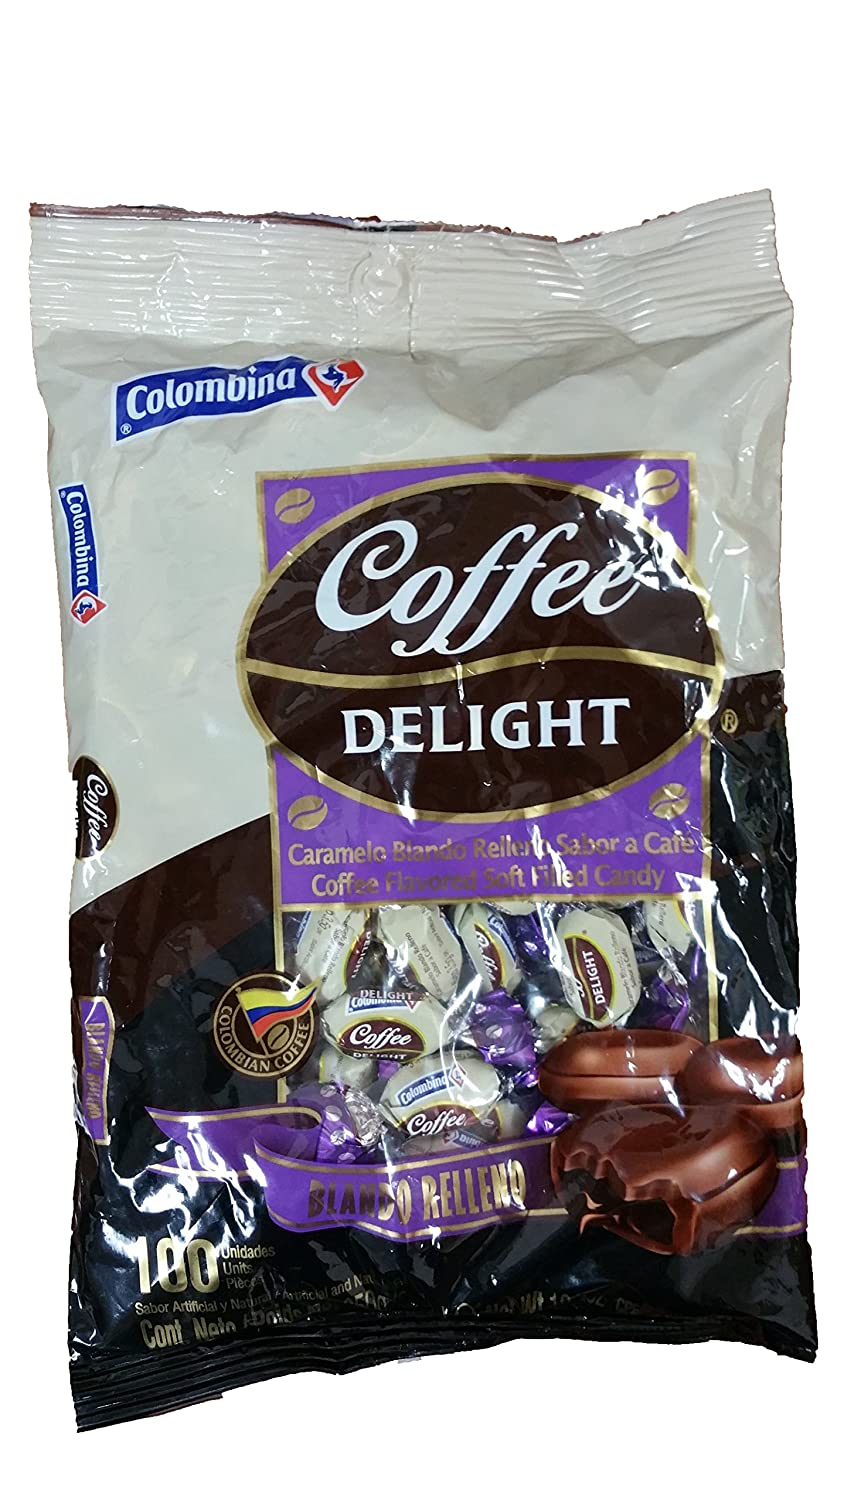 Amazon.com : Coffee Delight Caramelo Blando Relleno Con sabor a Café /Coffee Flavored Soft Filled Candy : Grocery & Gourmet Food